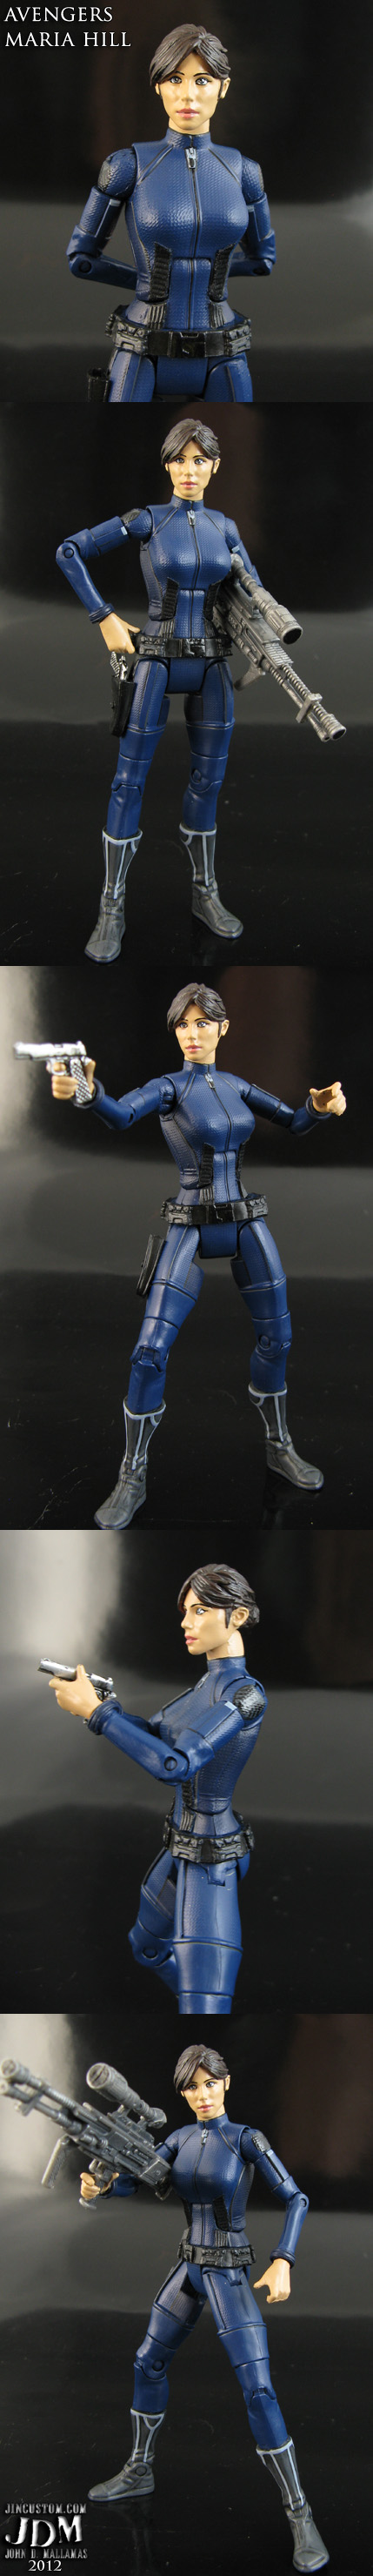 Avengers movie Maria Hill